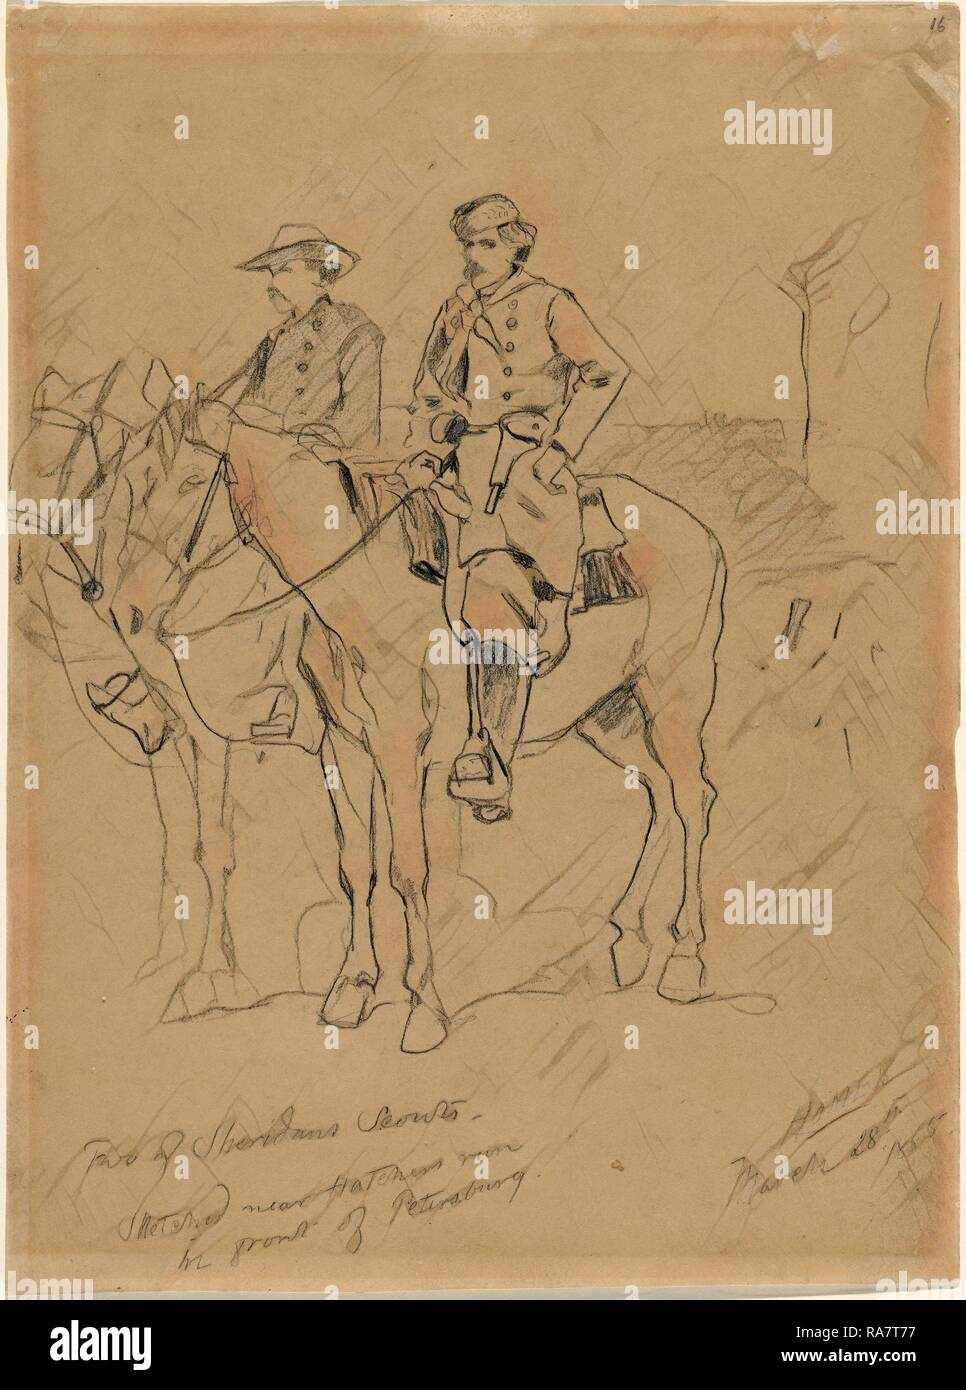 Winslow Homer, Two of Sheridan's Scouts, American, 1836 - 1910, 1865, graphite on wove paper. Reimagined - Stock Image